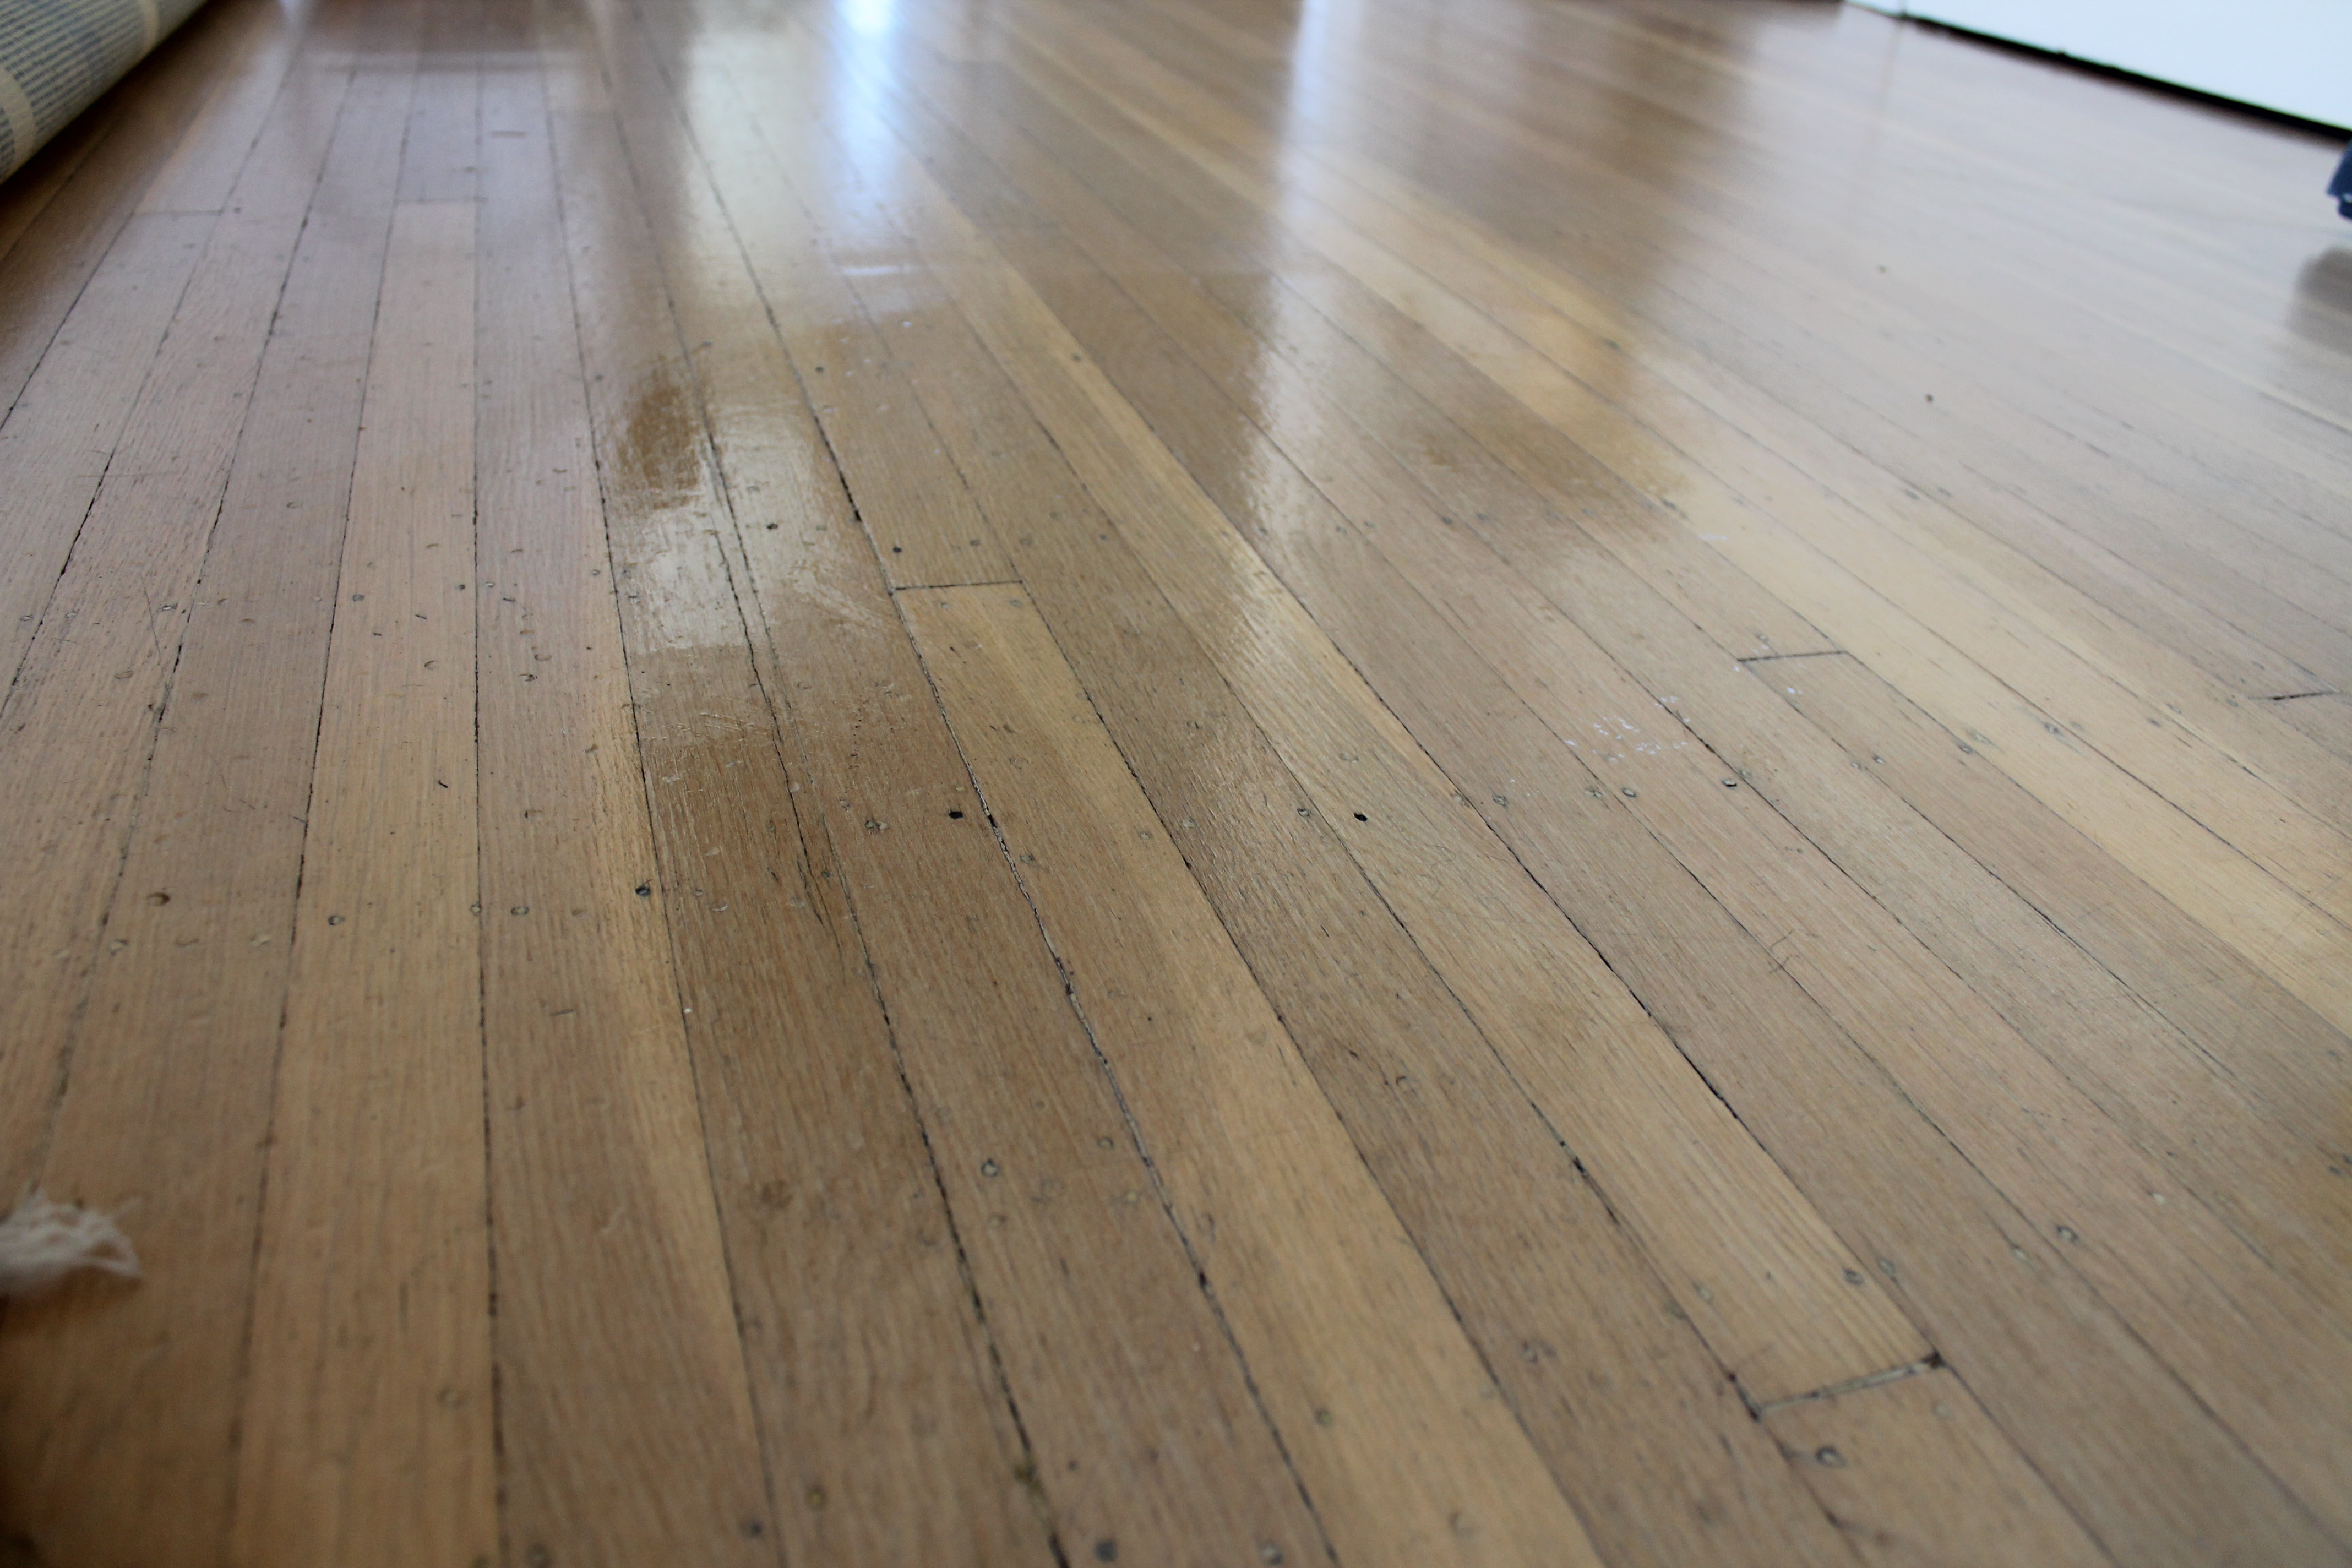 Best ideas about DIY Wood Floors . Save or Pin DIY Wood Floor Polish Now.